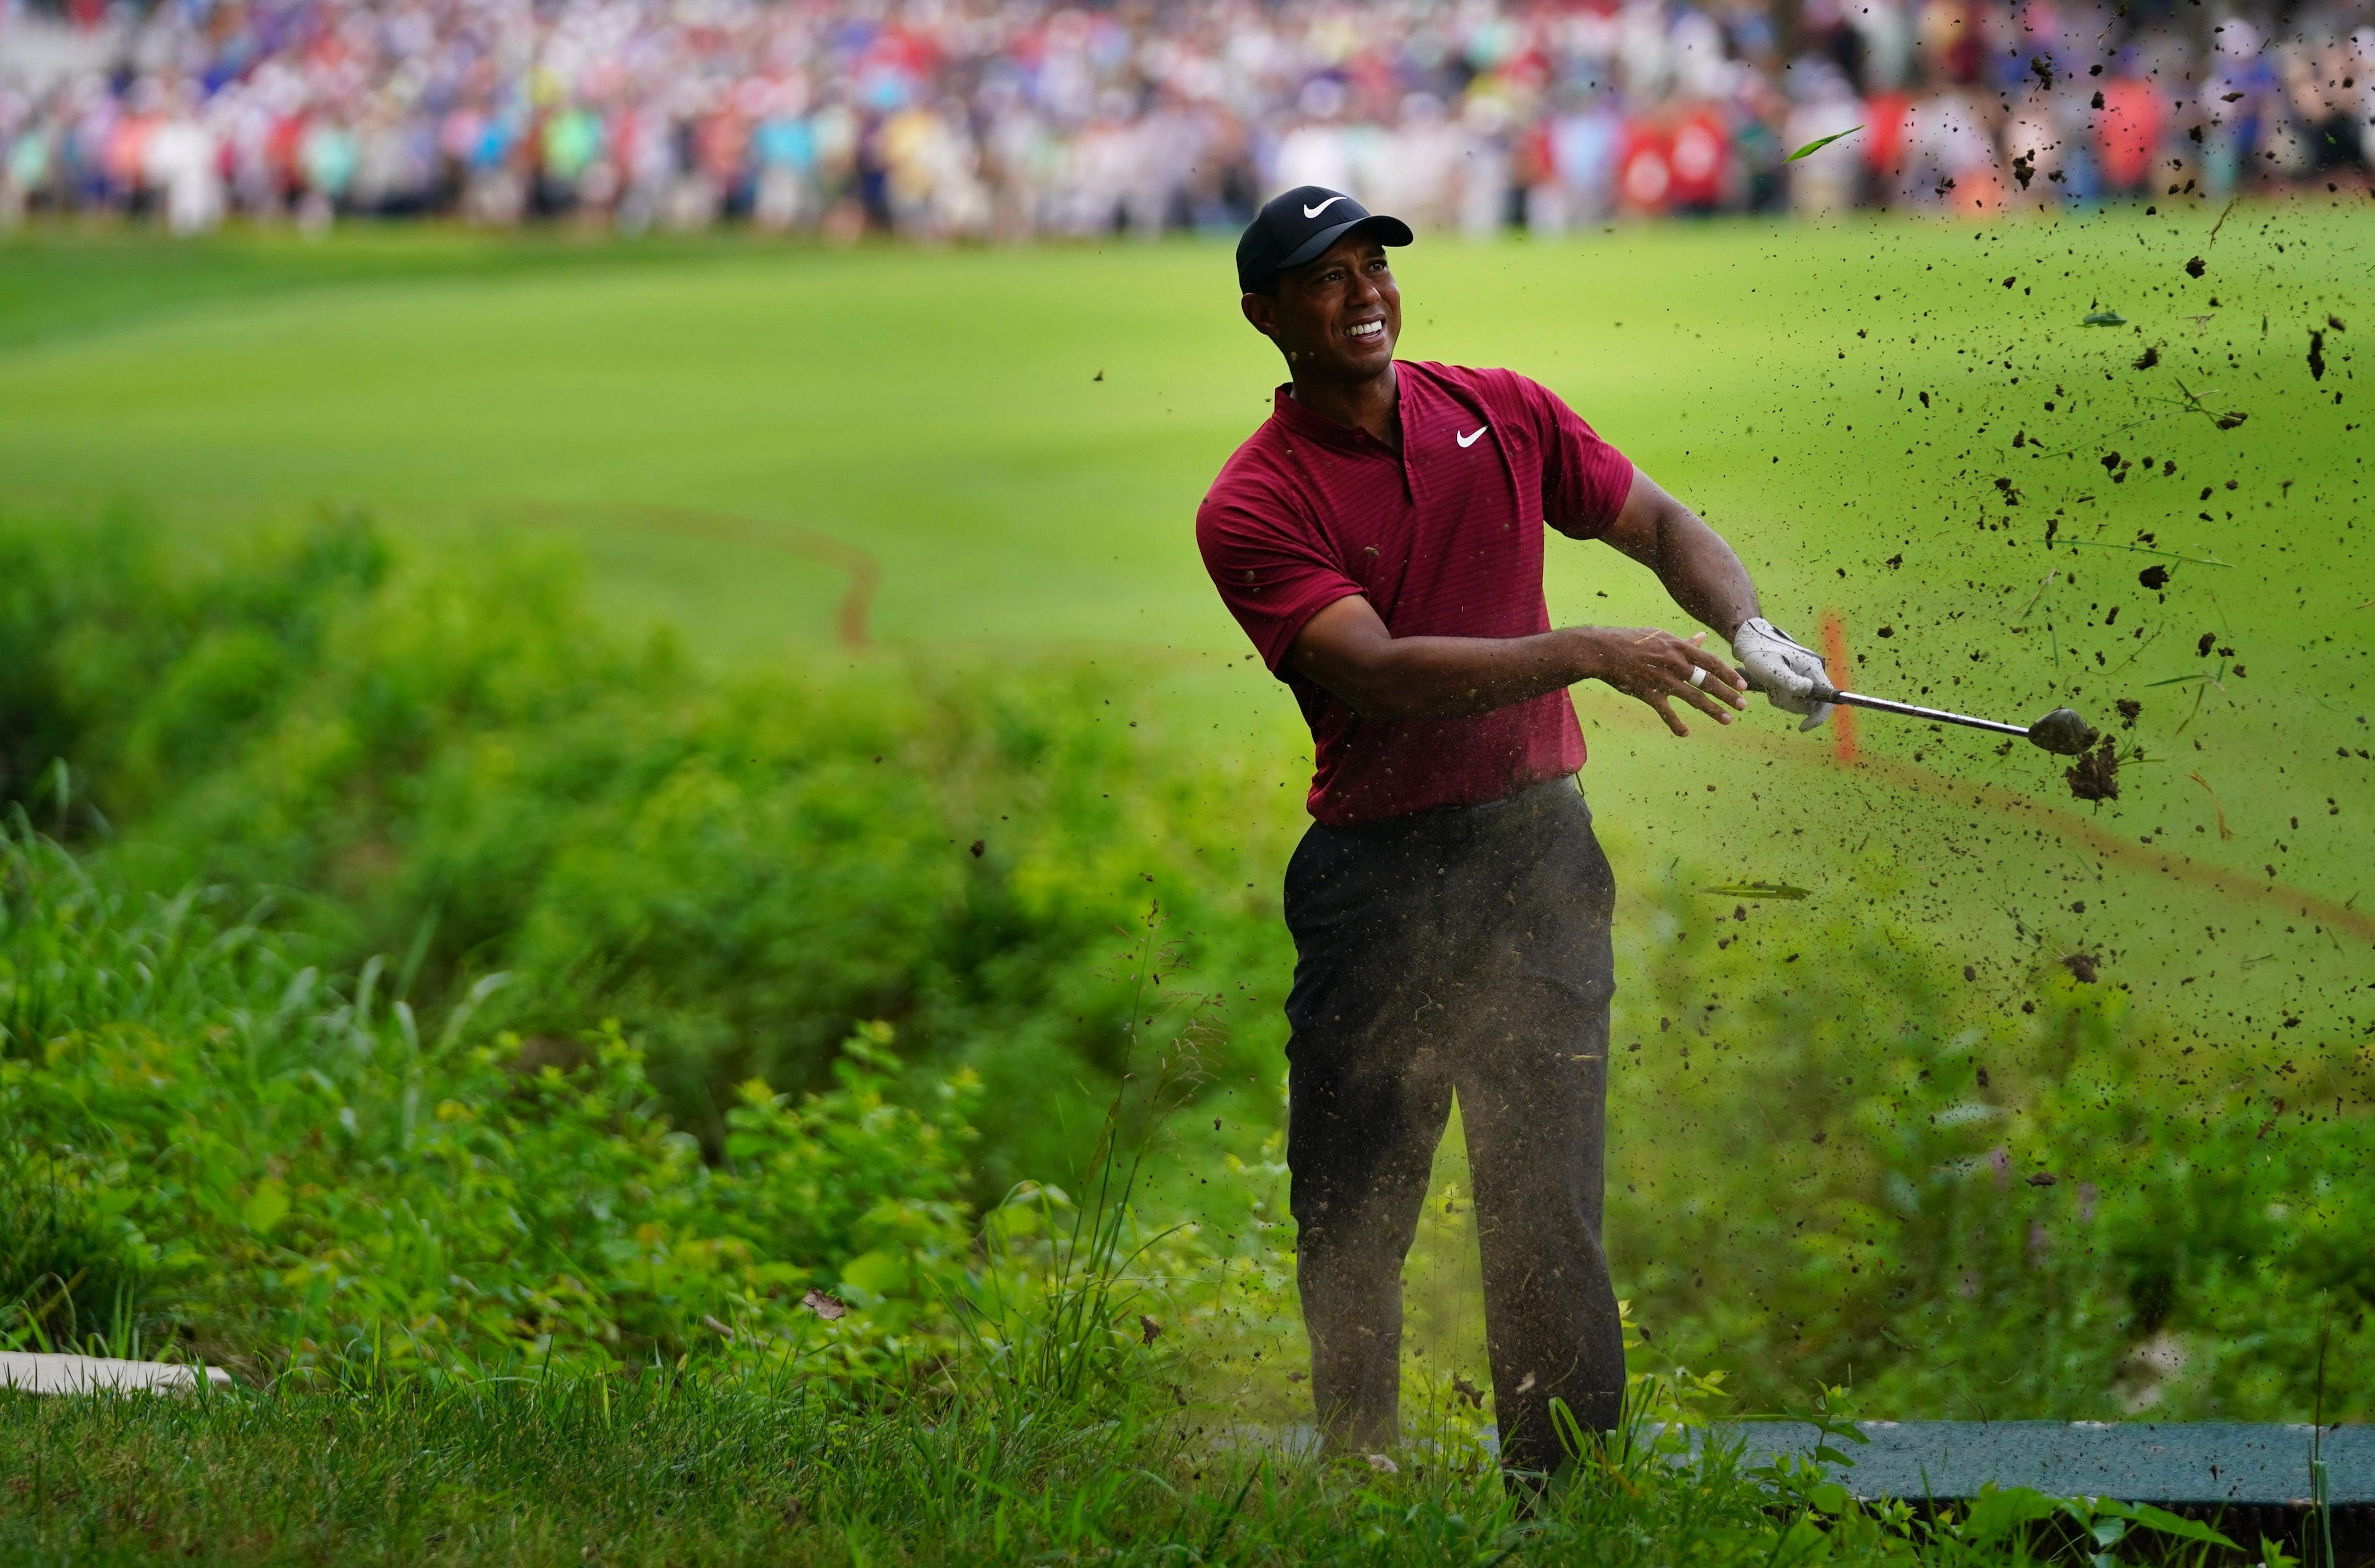 Tiger Woods got himself out of some sticky spots as he finsihed the US PGA Open with a 64